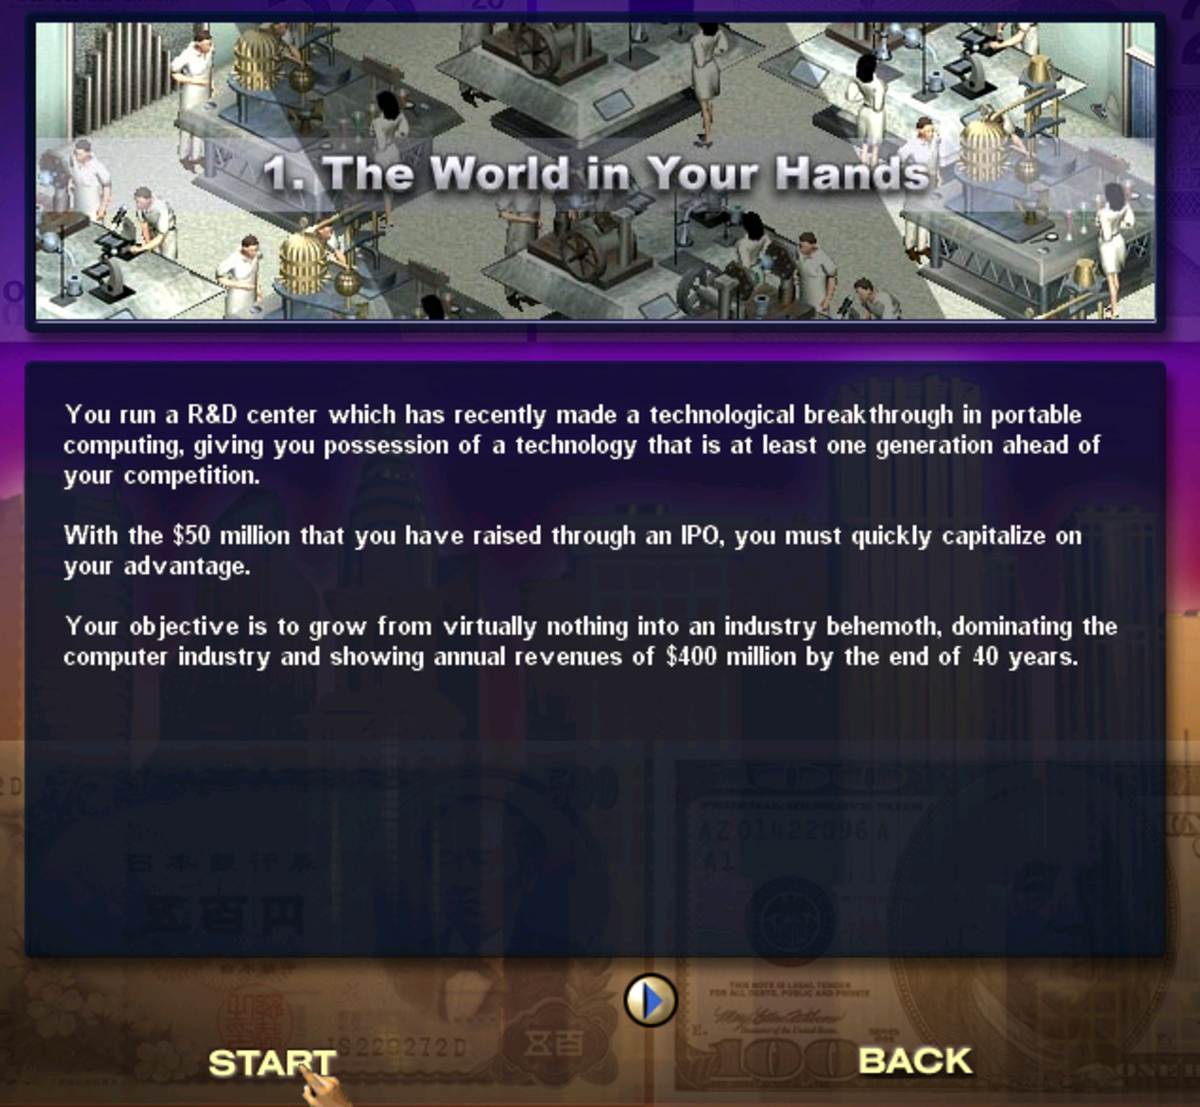 capitalism-2-how-to-beat-the-world-in-your-hands